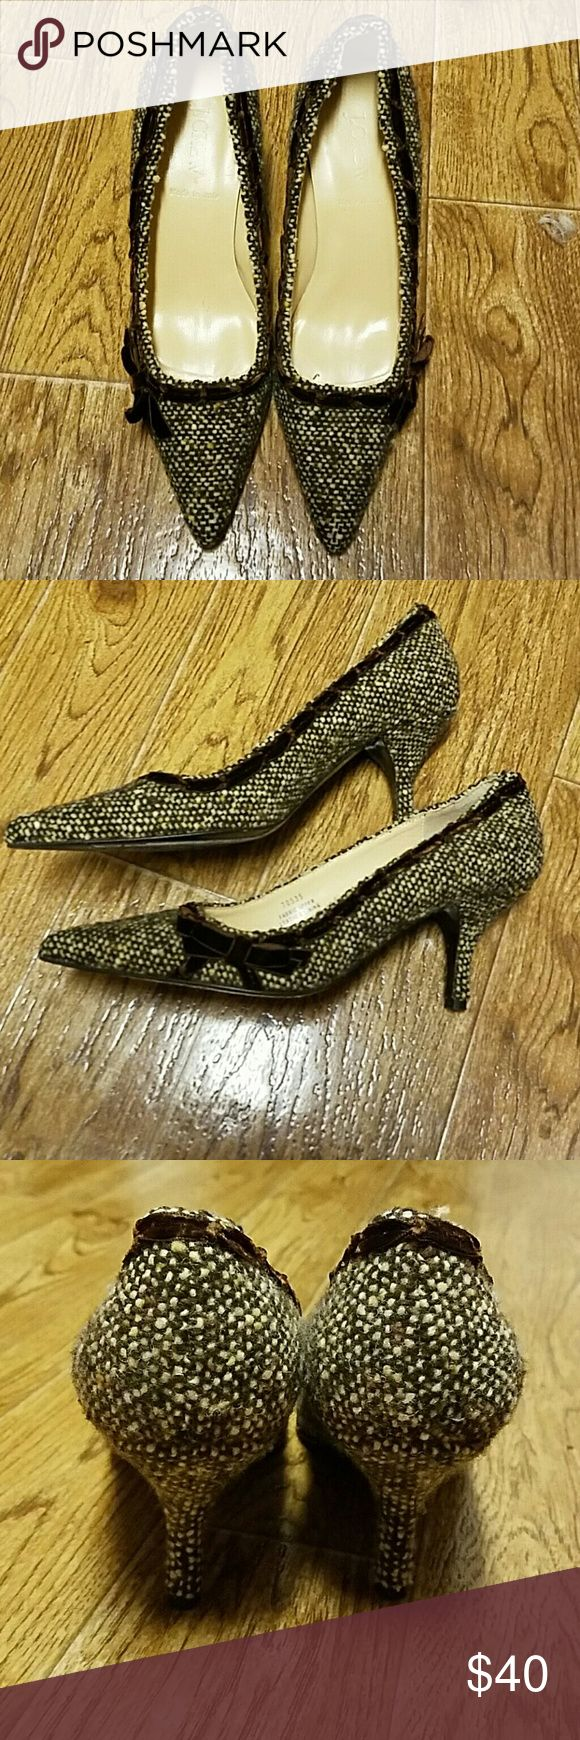 🎉🎉🎉J. Crew ladies pumps🎉🎉🎉 Super cute tweed J. Crew pumps with cute little bows. Pre loved.. Size 7. 3in heels. Made in Italy. J. Crew Shoes Heels